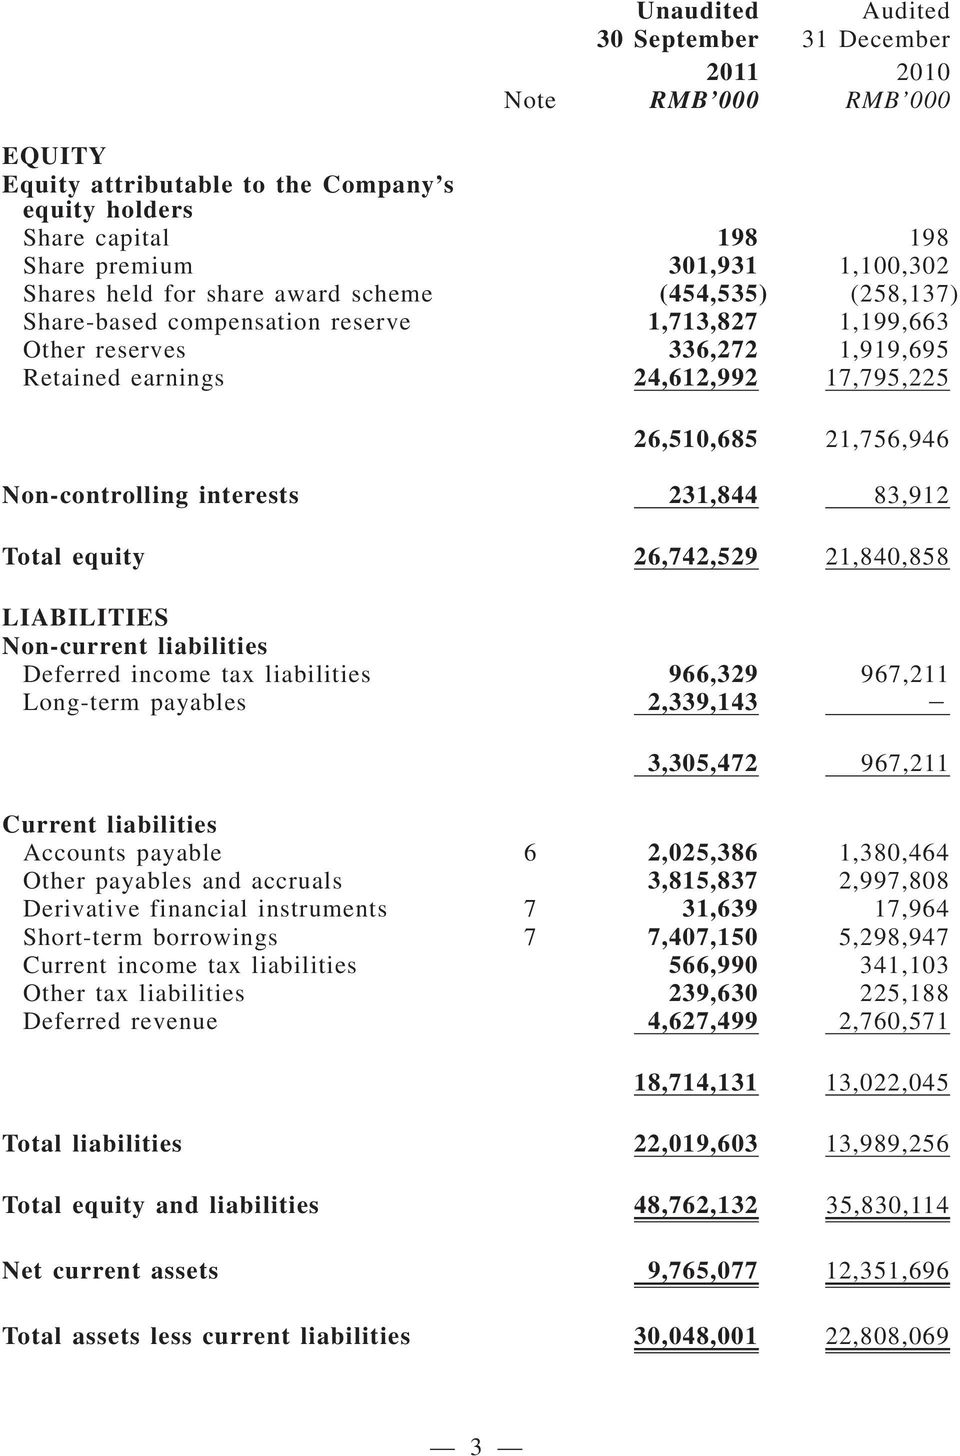 interests 231,844 83,912 Total equity 26,742,529 21,840,858 LIABILITIES Non-current liabilities Deferred income tax liabilities 966,329 967,211 Long-term payables 2,339,143 3,305,472 967,211 Current